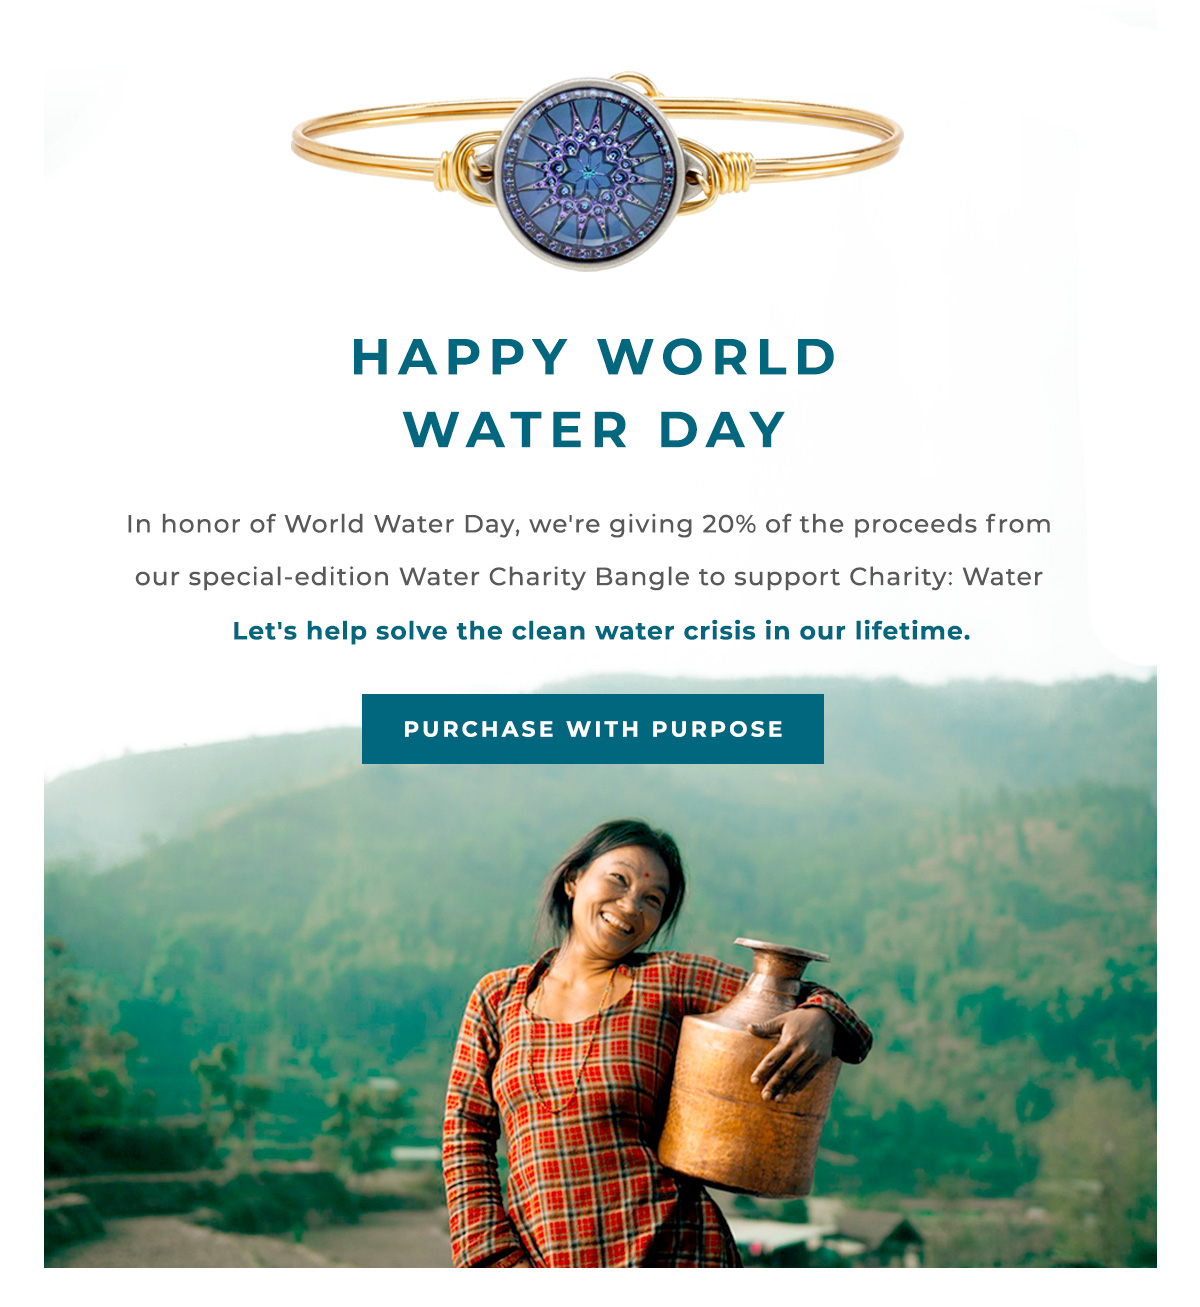 HAPPY WORLD WATER DAY | In honor of World Water Day, we're giving 20% of the proceeds from our special-edition Water Charity Bangle to support Charity: Water | Let's help solve the clean water crisis in our lifetime. | PURCHASE WITH PURPOSE